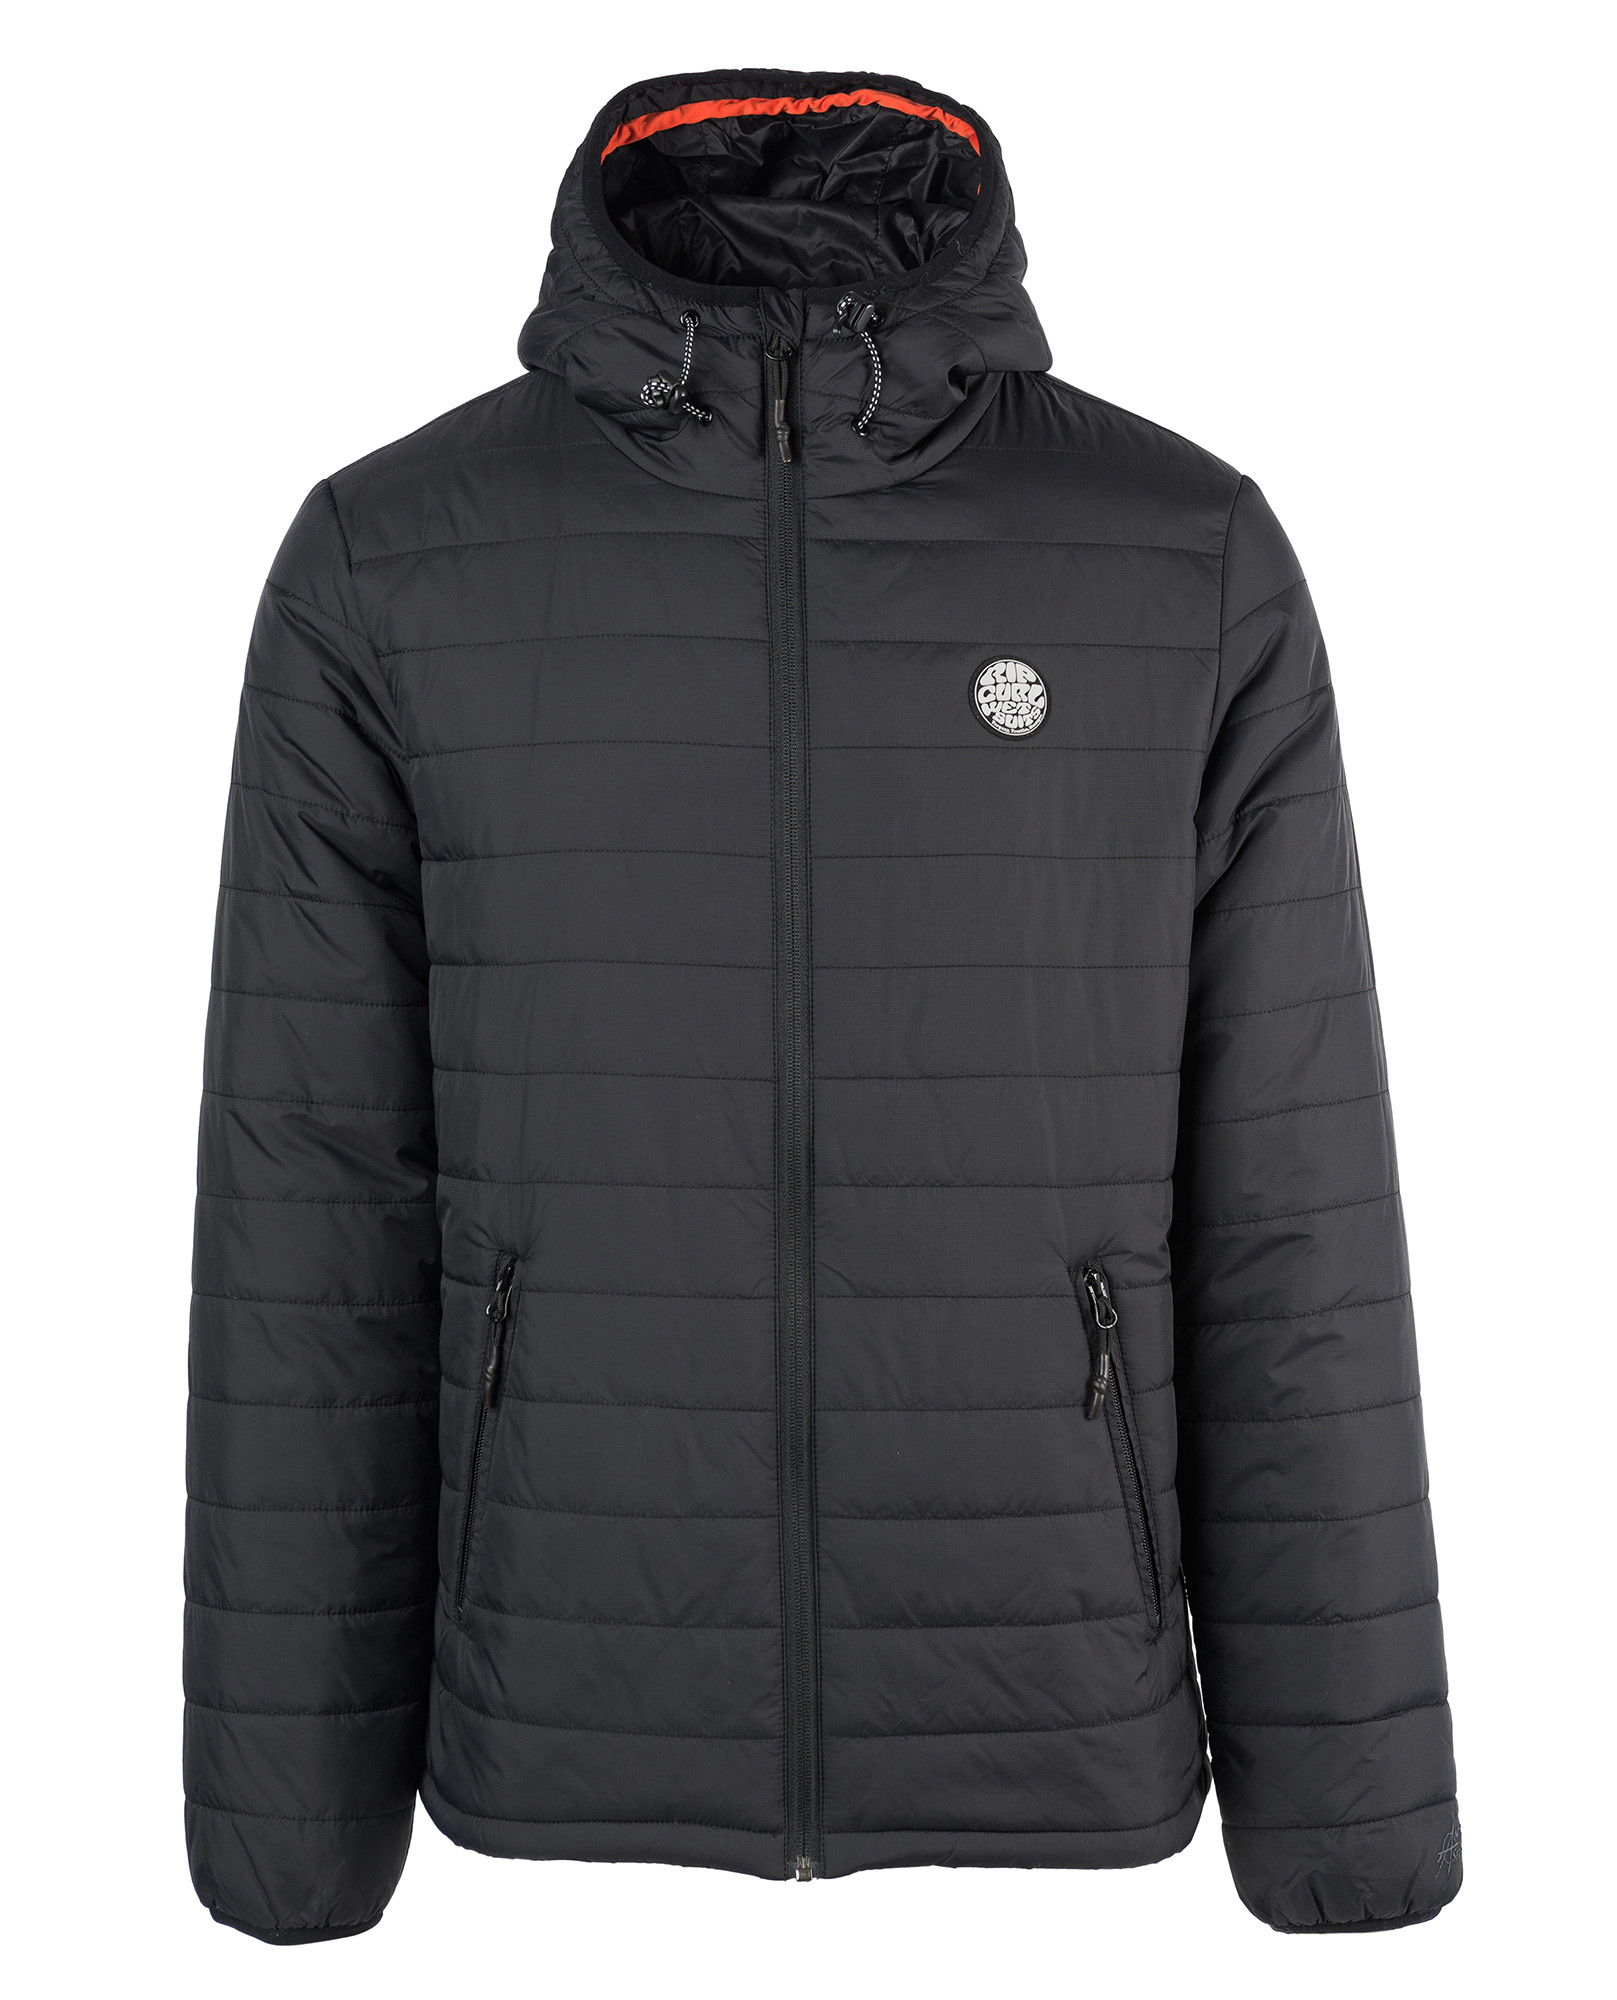 CAZADORA RIP CURL ORIGINALS INSULATED